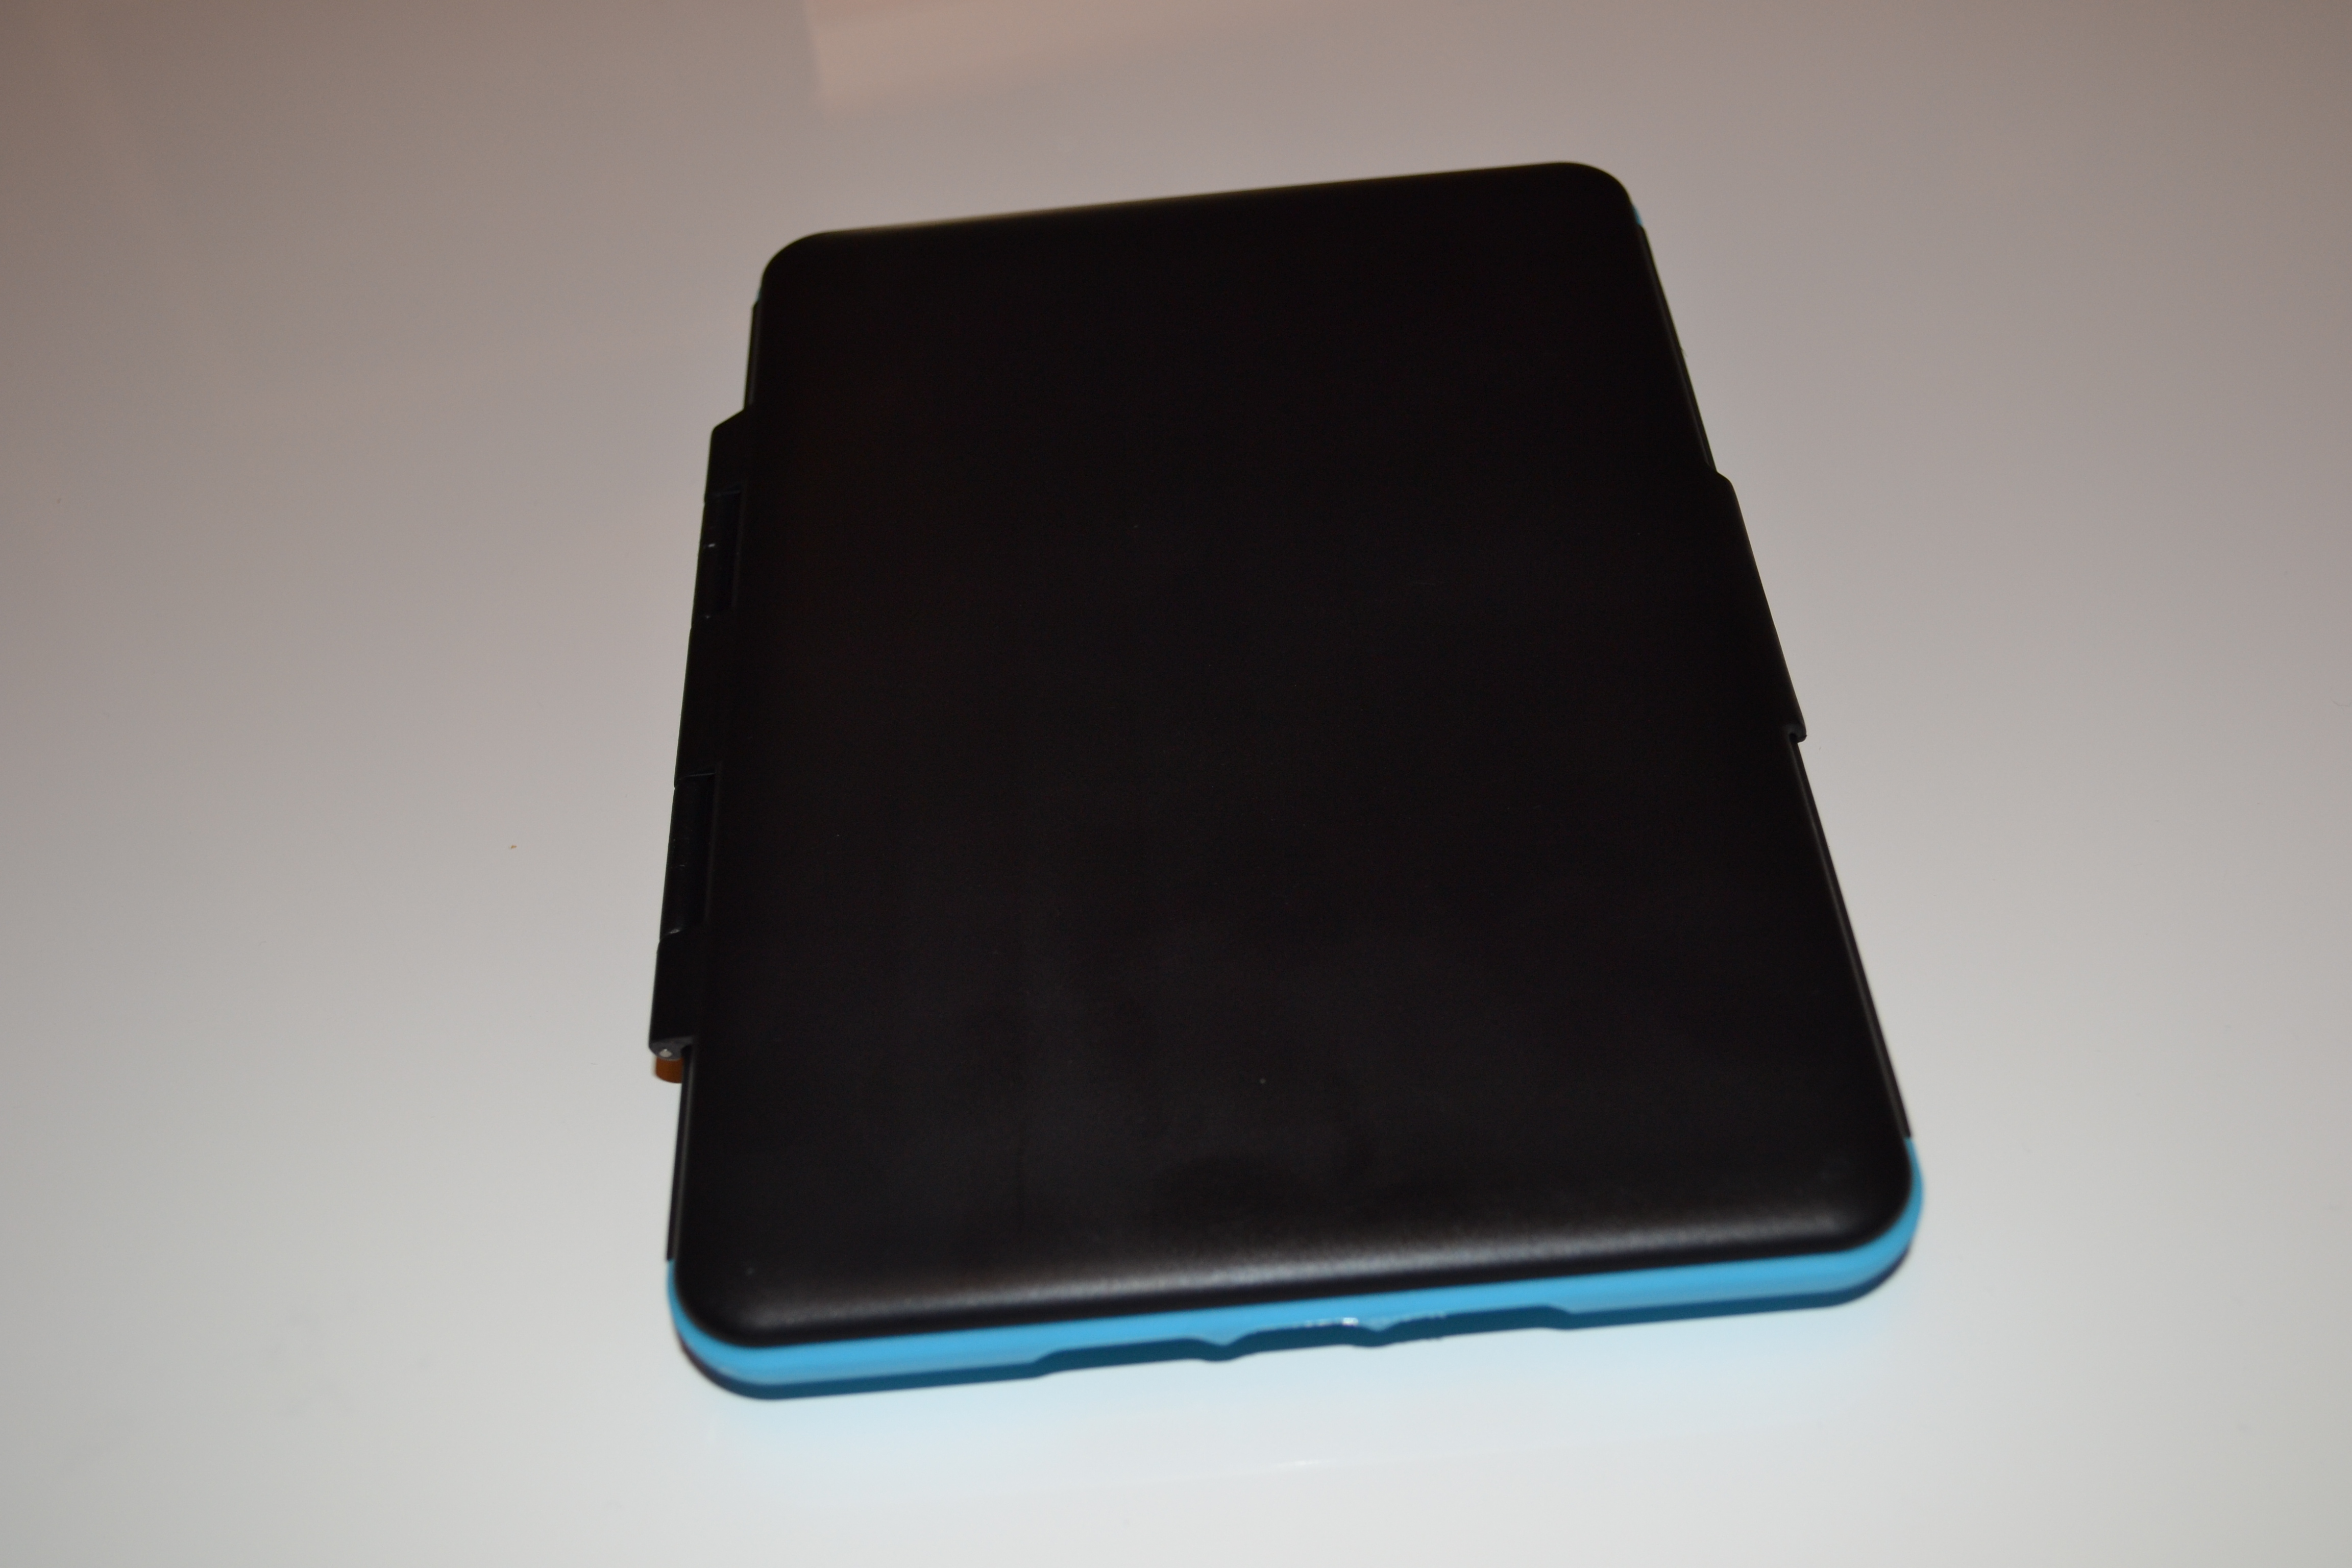 Caseit iPad mini clip on hard and rotating cases   Review.